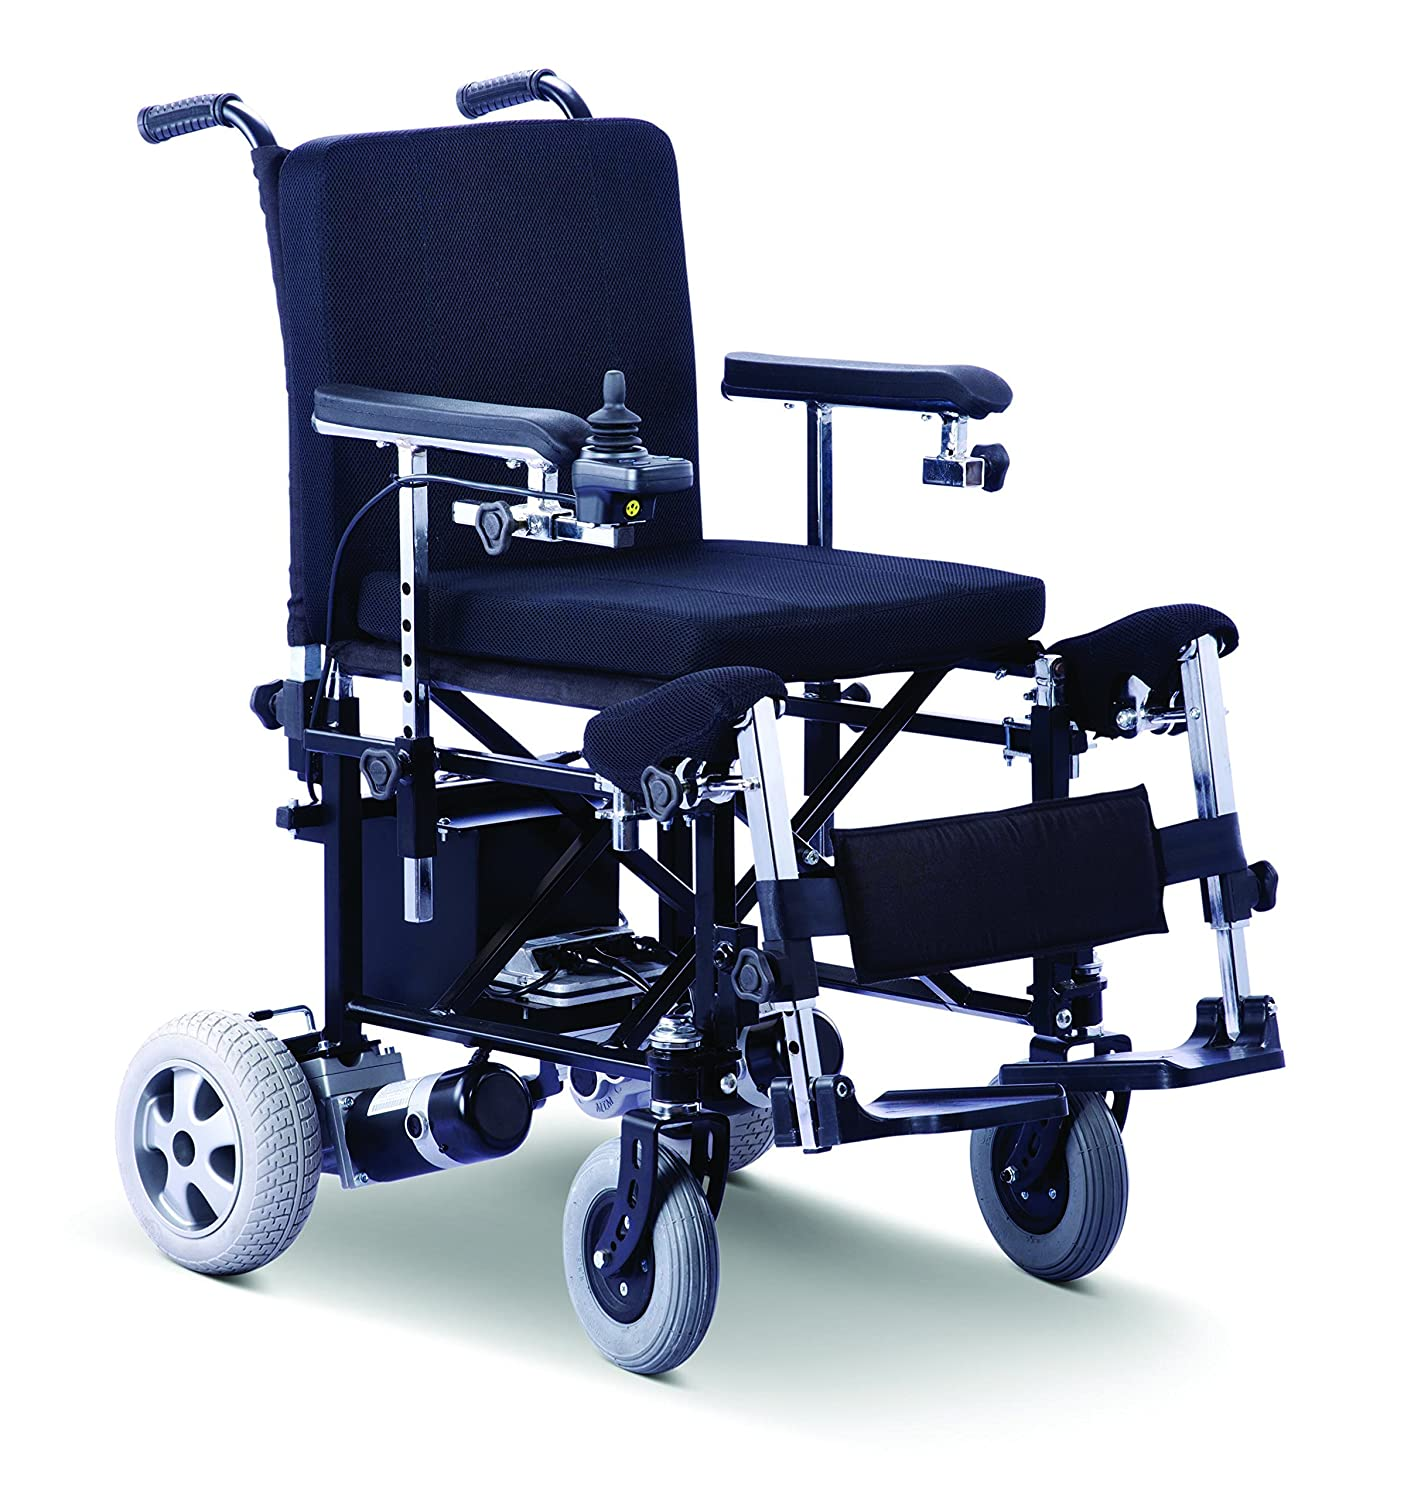 Buy Ostrich Mobility Verve Fx Electric Wheel Chair line at Low